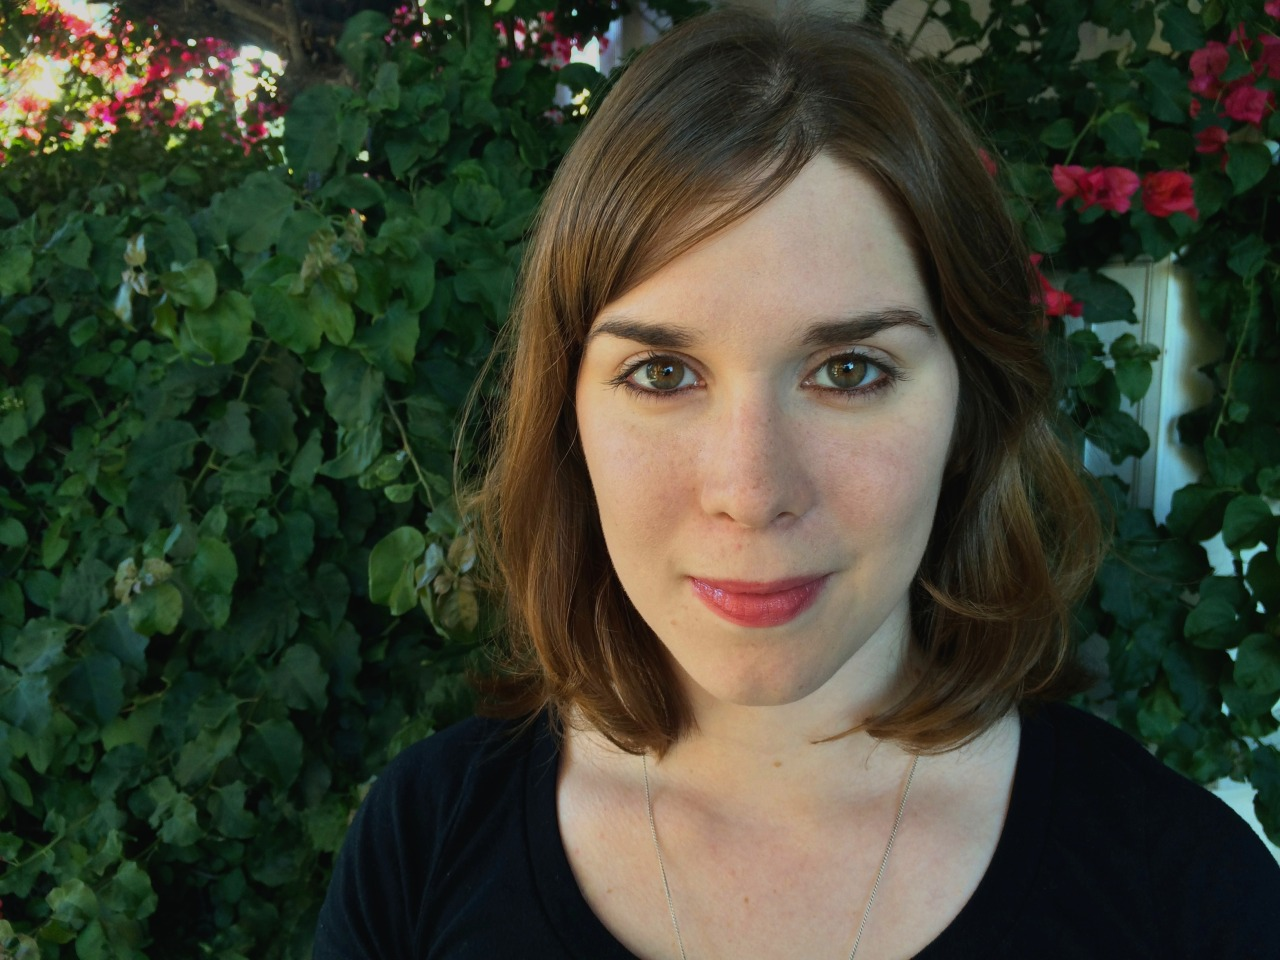 We interviewed Katie Coyle, author of 'Vivian Apple at the End of the World'